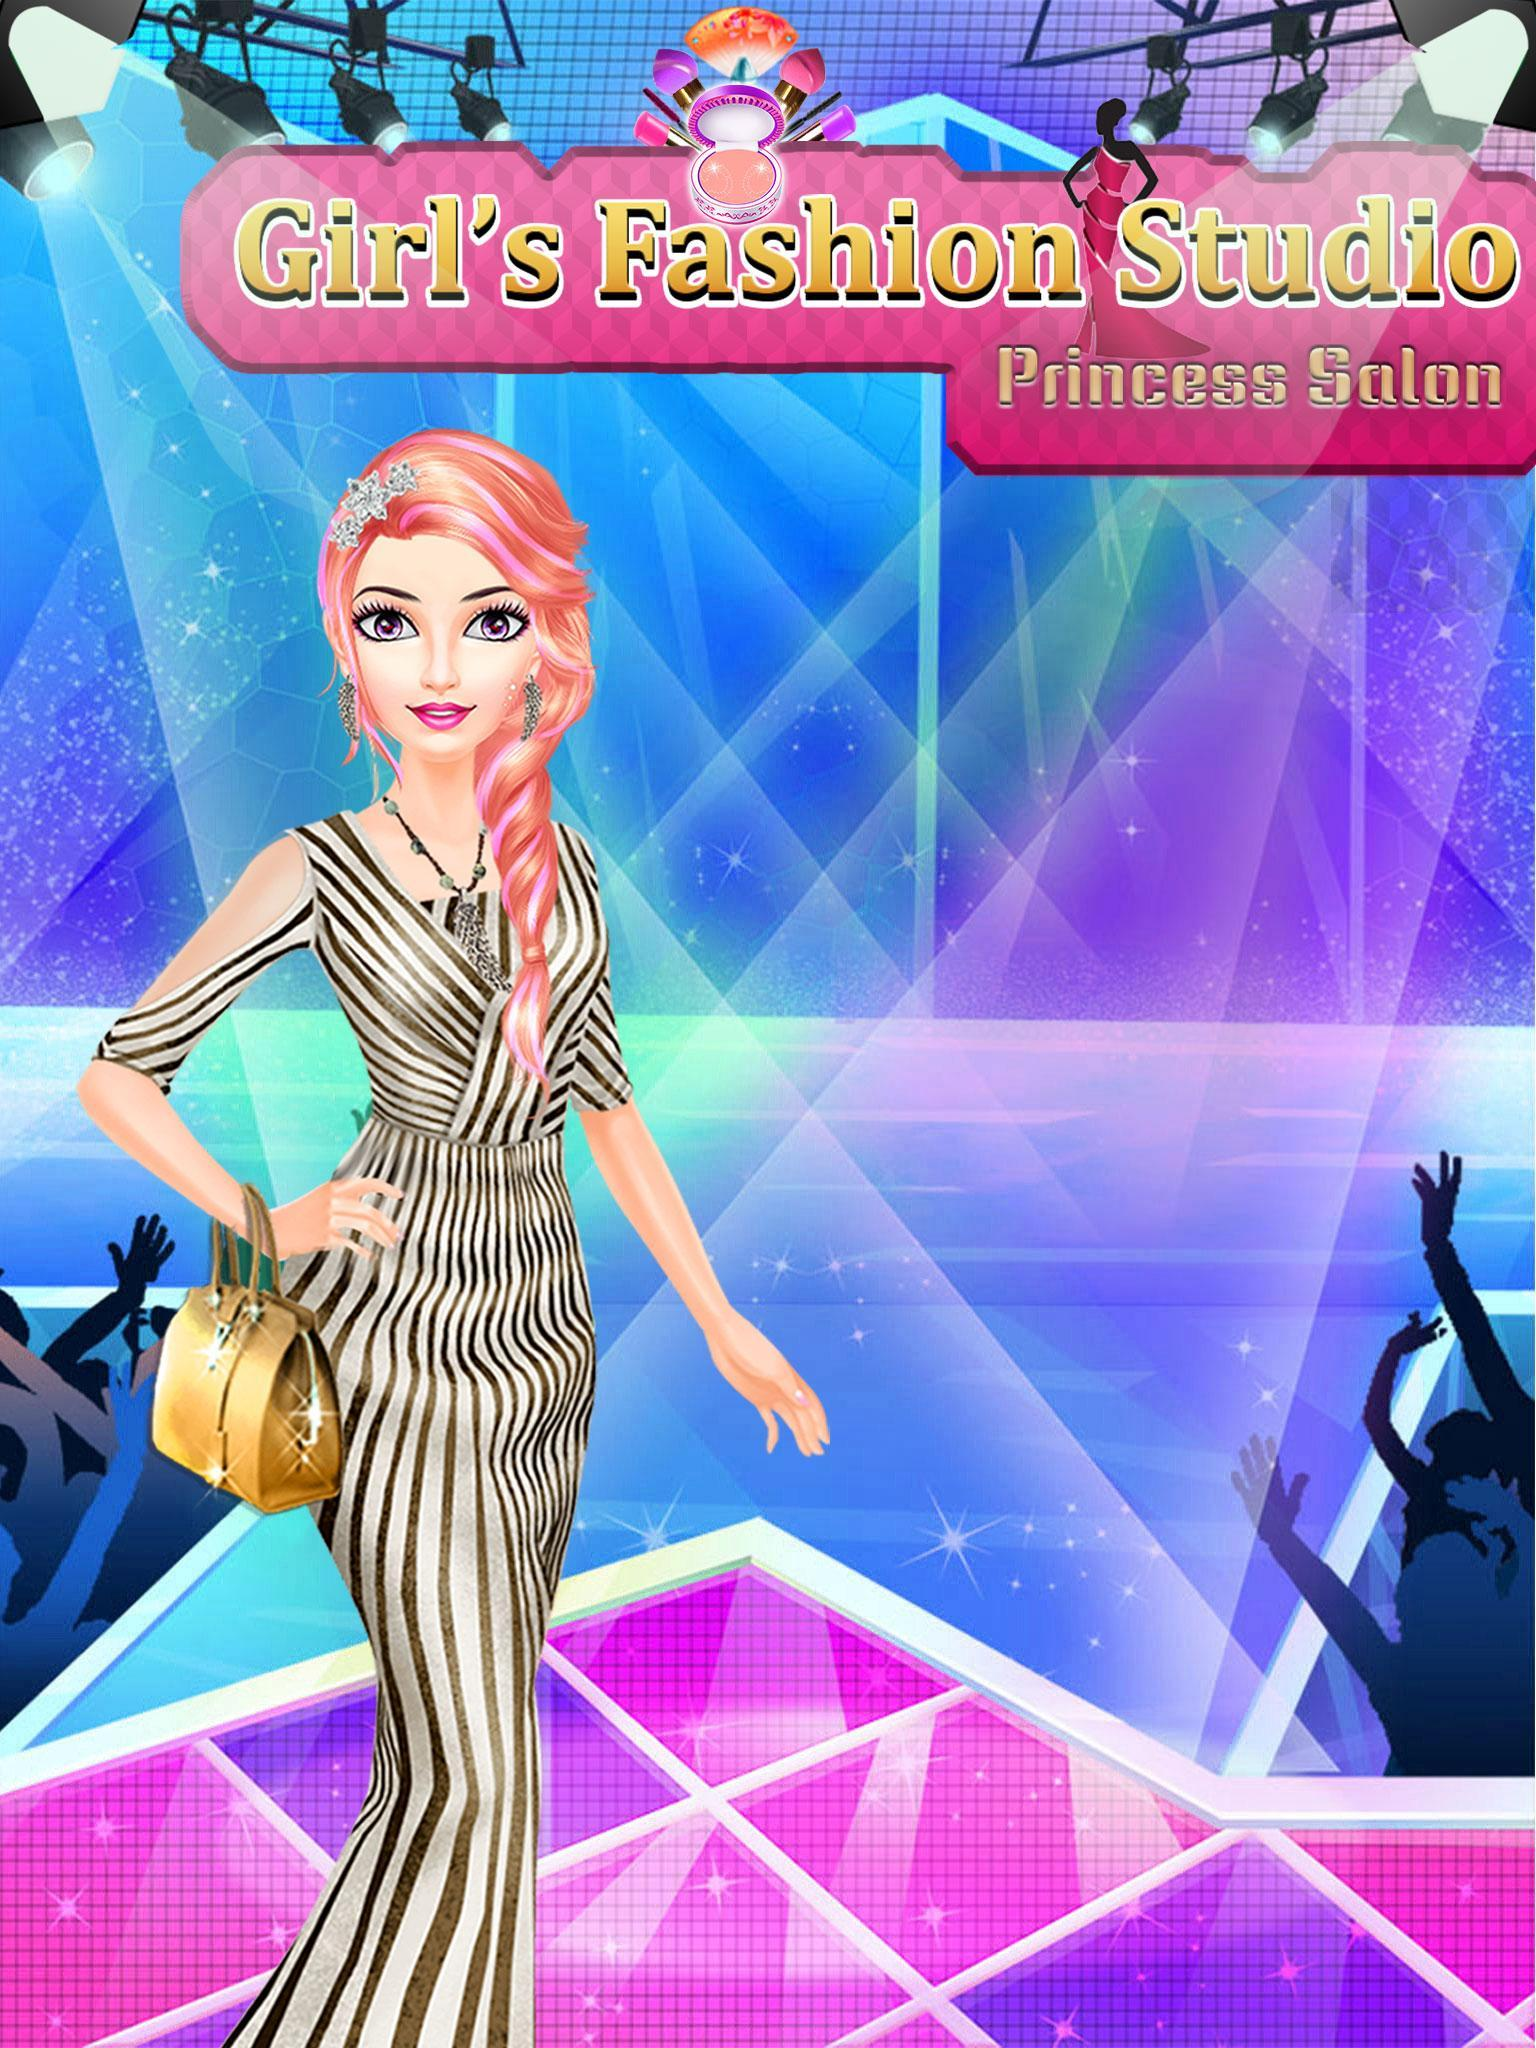 Makeup Salon Girl Fashion Studio Game For Girls For Android Apk Download